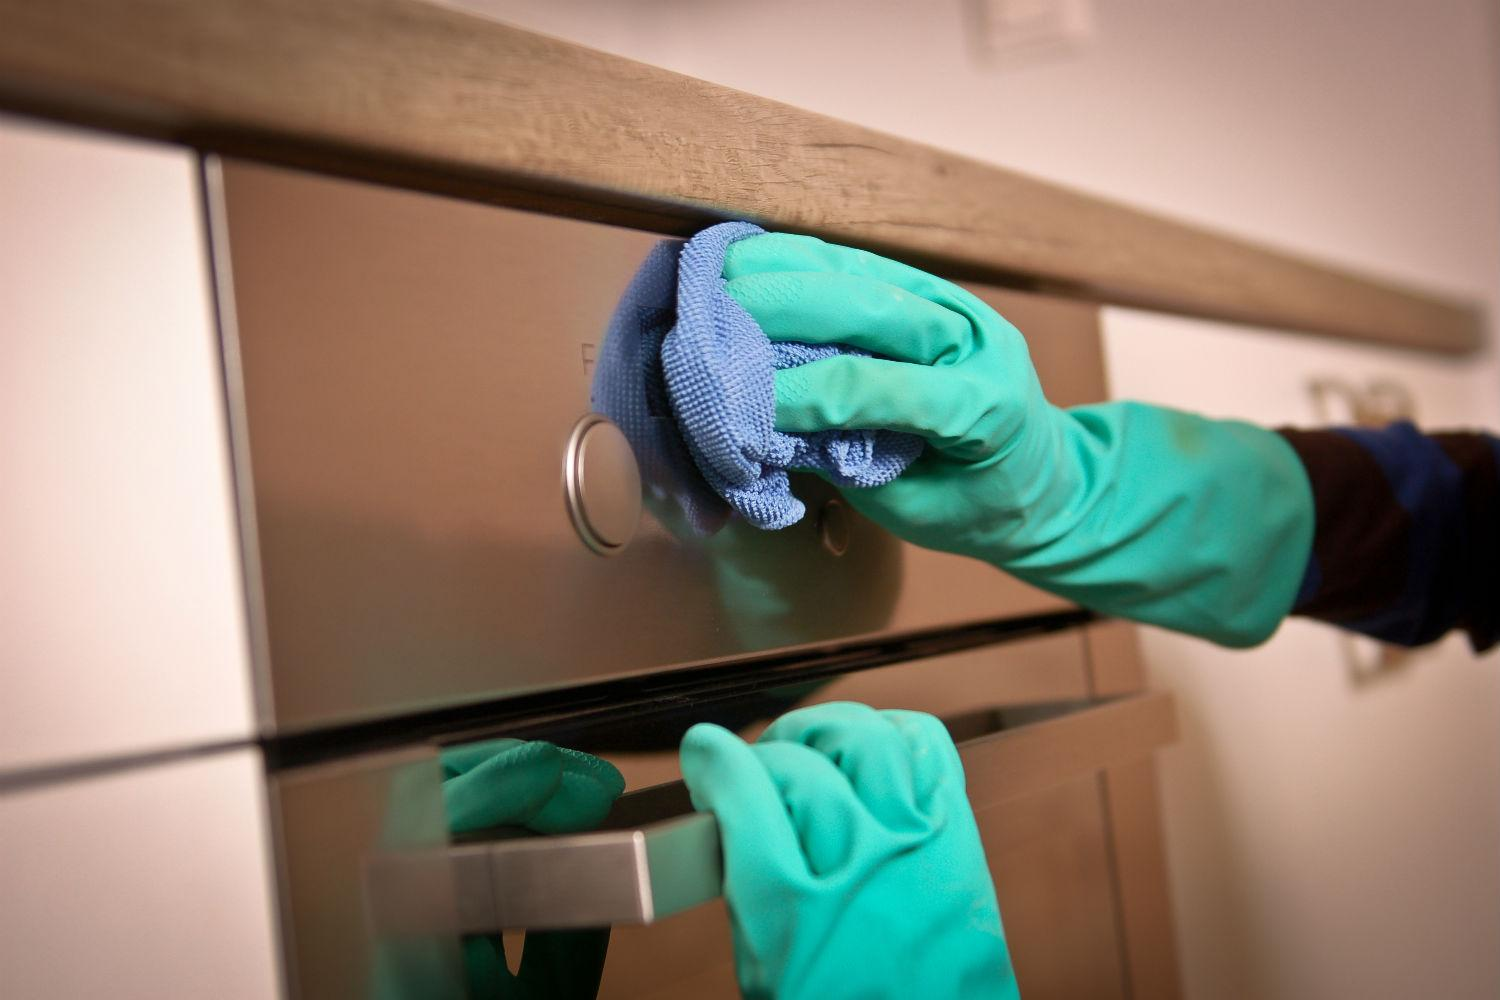 5 Cost-Effective Ways To Clean Your House In An Eco-Friendly Way